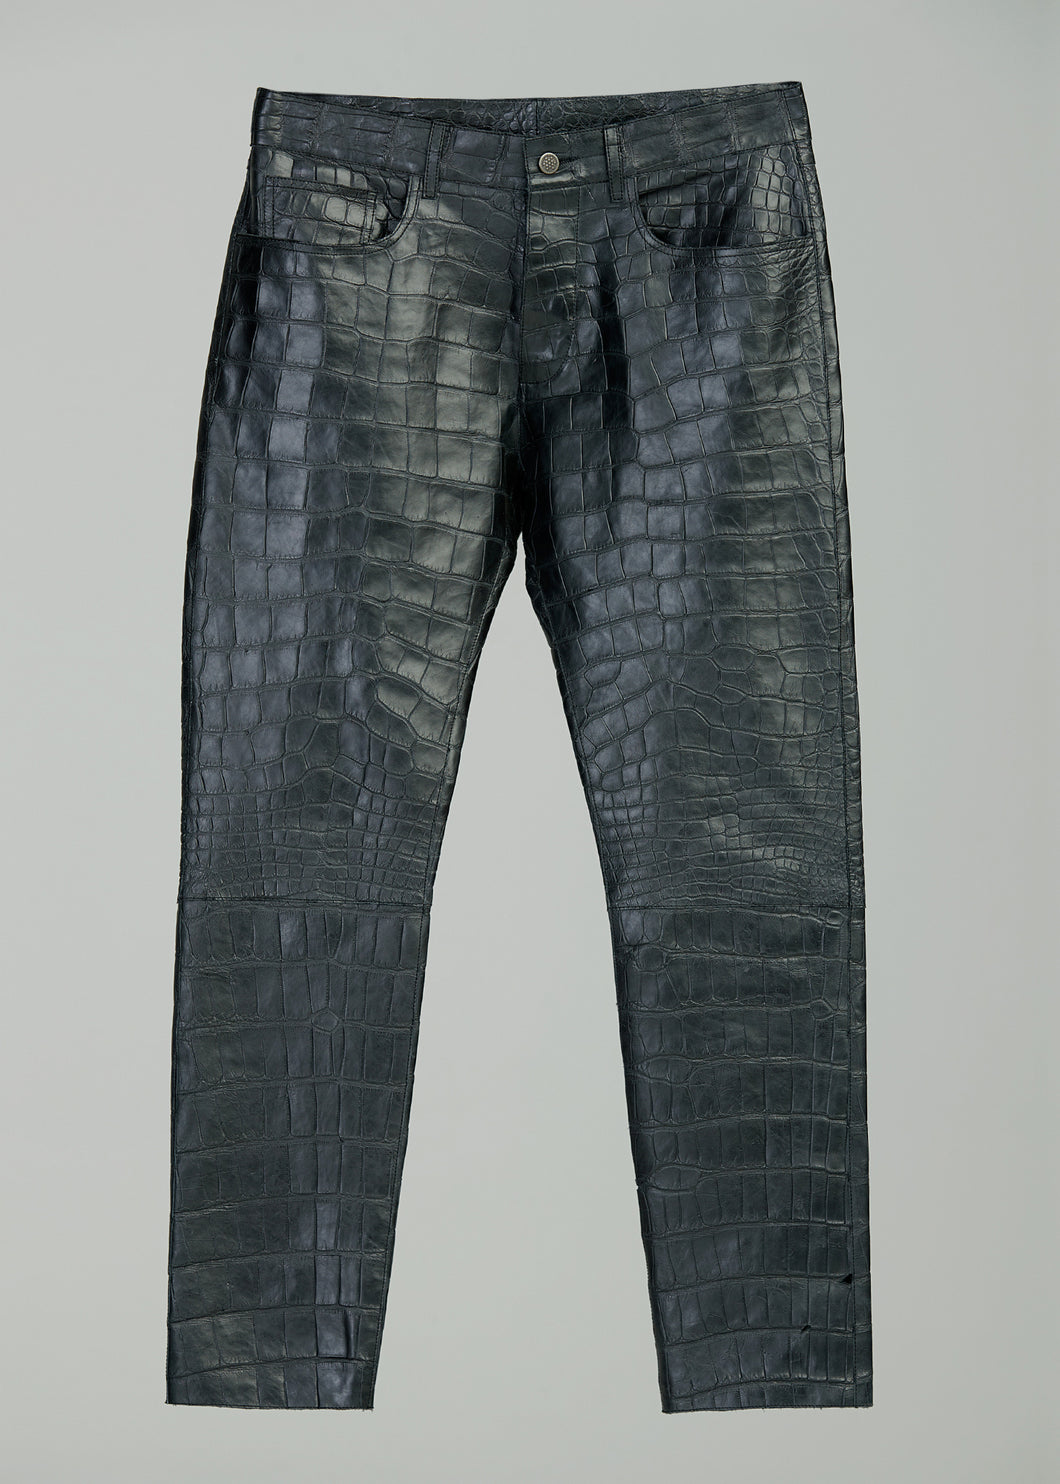 LEATHER JEANS (ALLIGATOR)(BLACK)